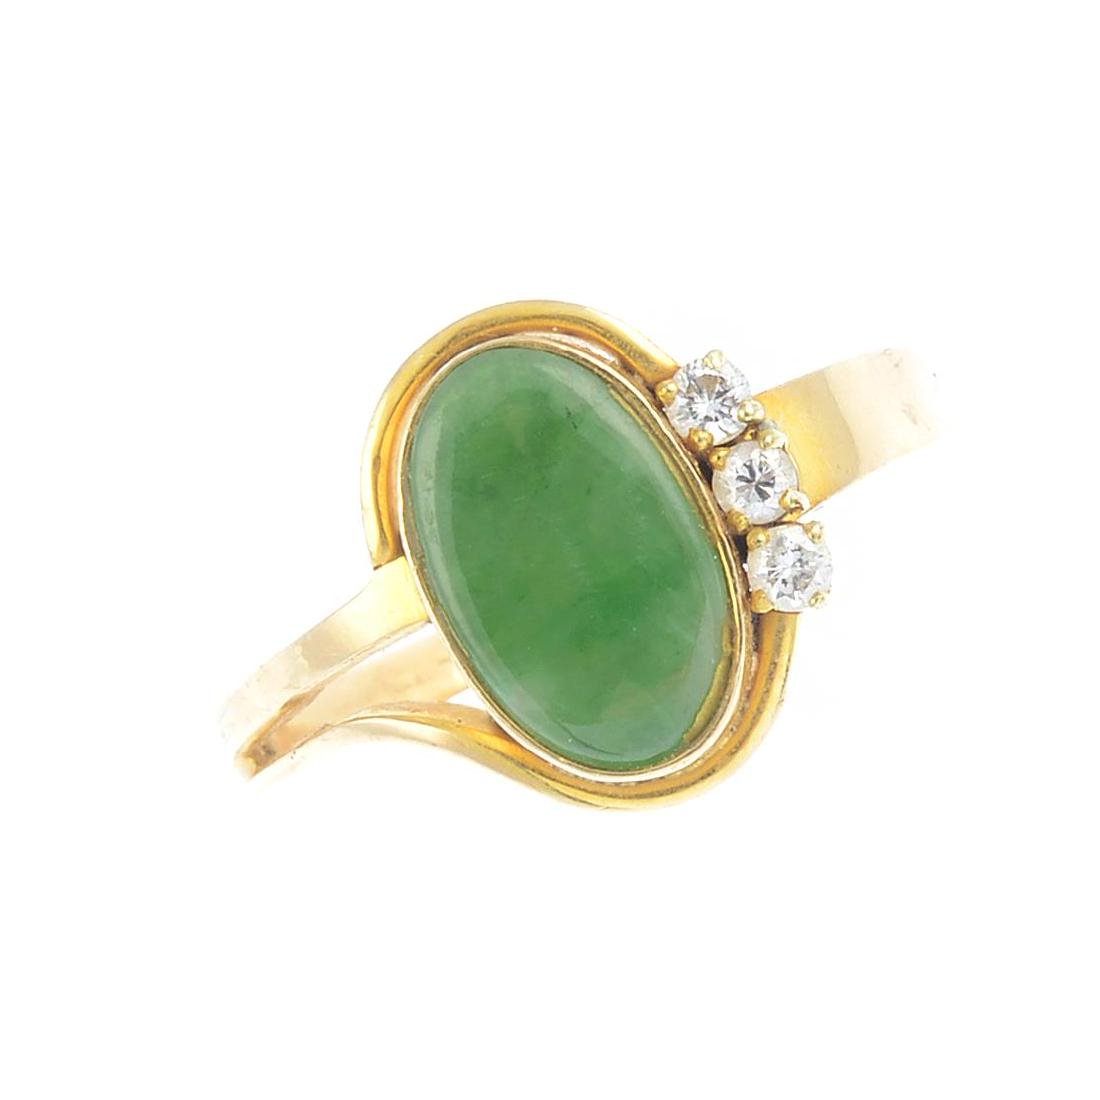 A jade and diamond dress ring. The oval jadeite